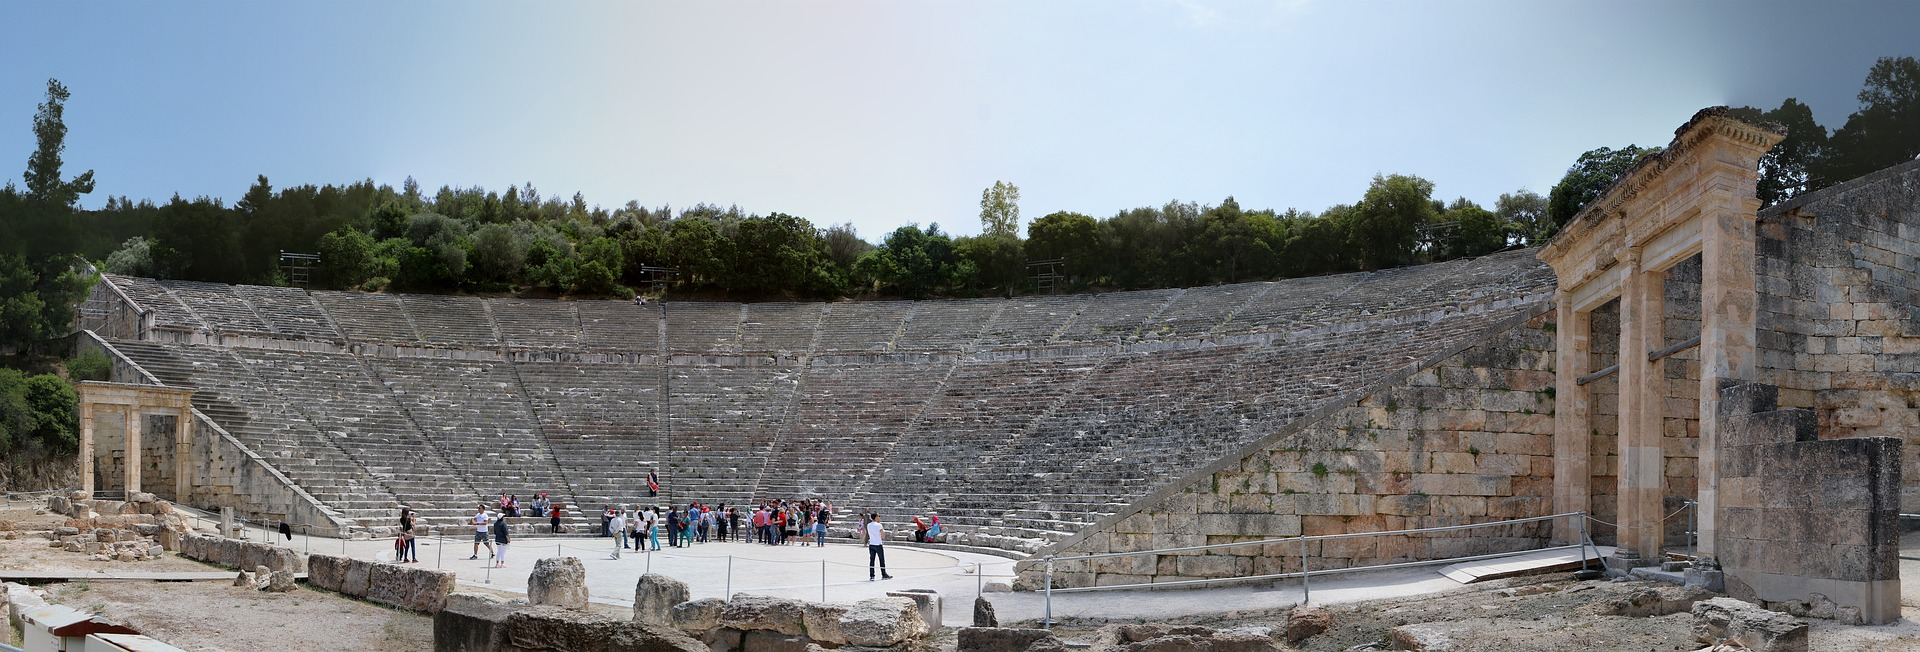 Discover Mythical Peloponnese_epidaurus theater